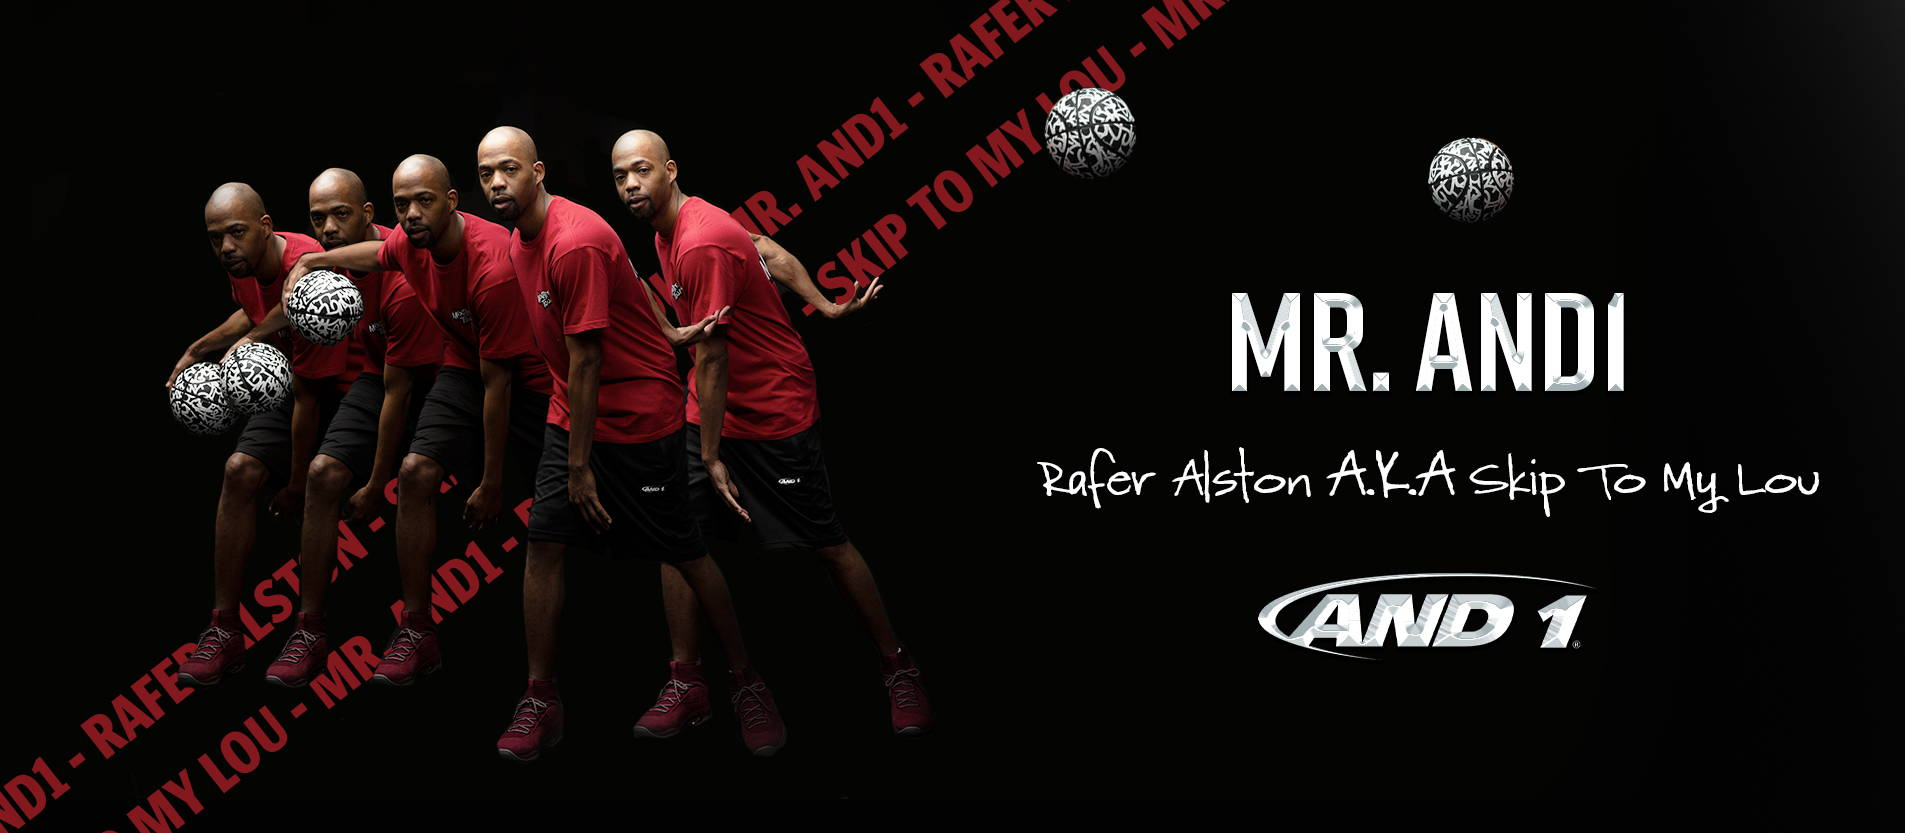 Mr. AND1, Rafer Alston AKA . Skip To My Lou. Shop the new clothing collection